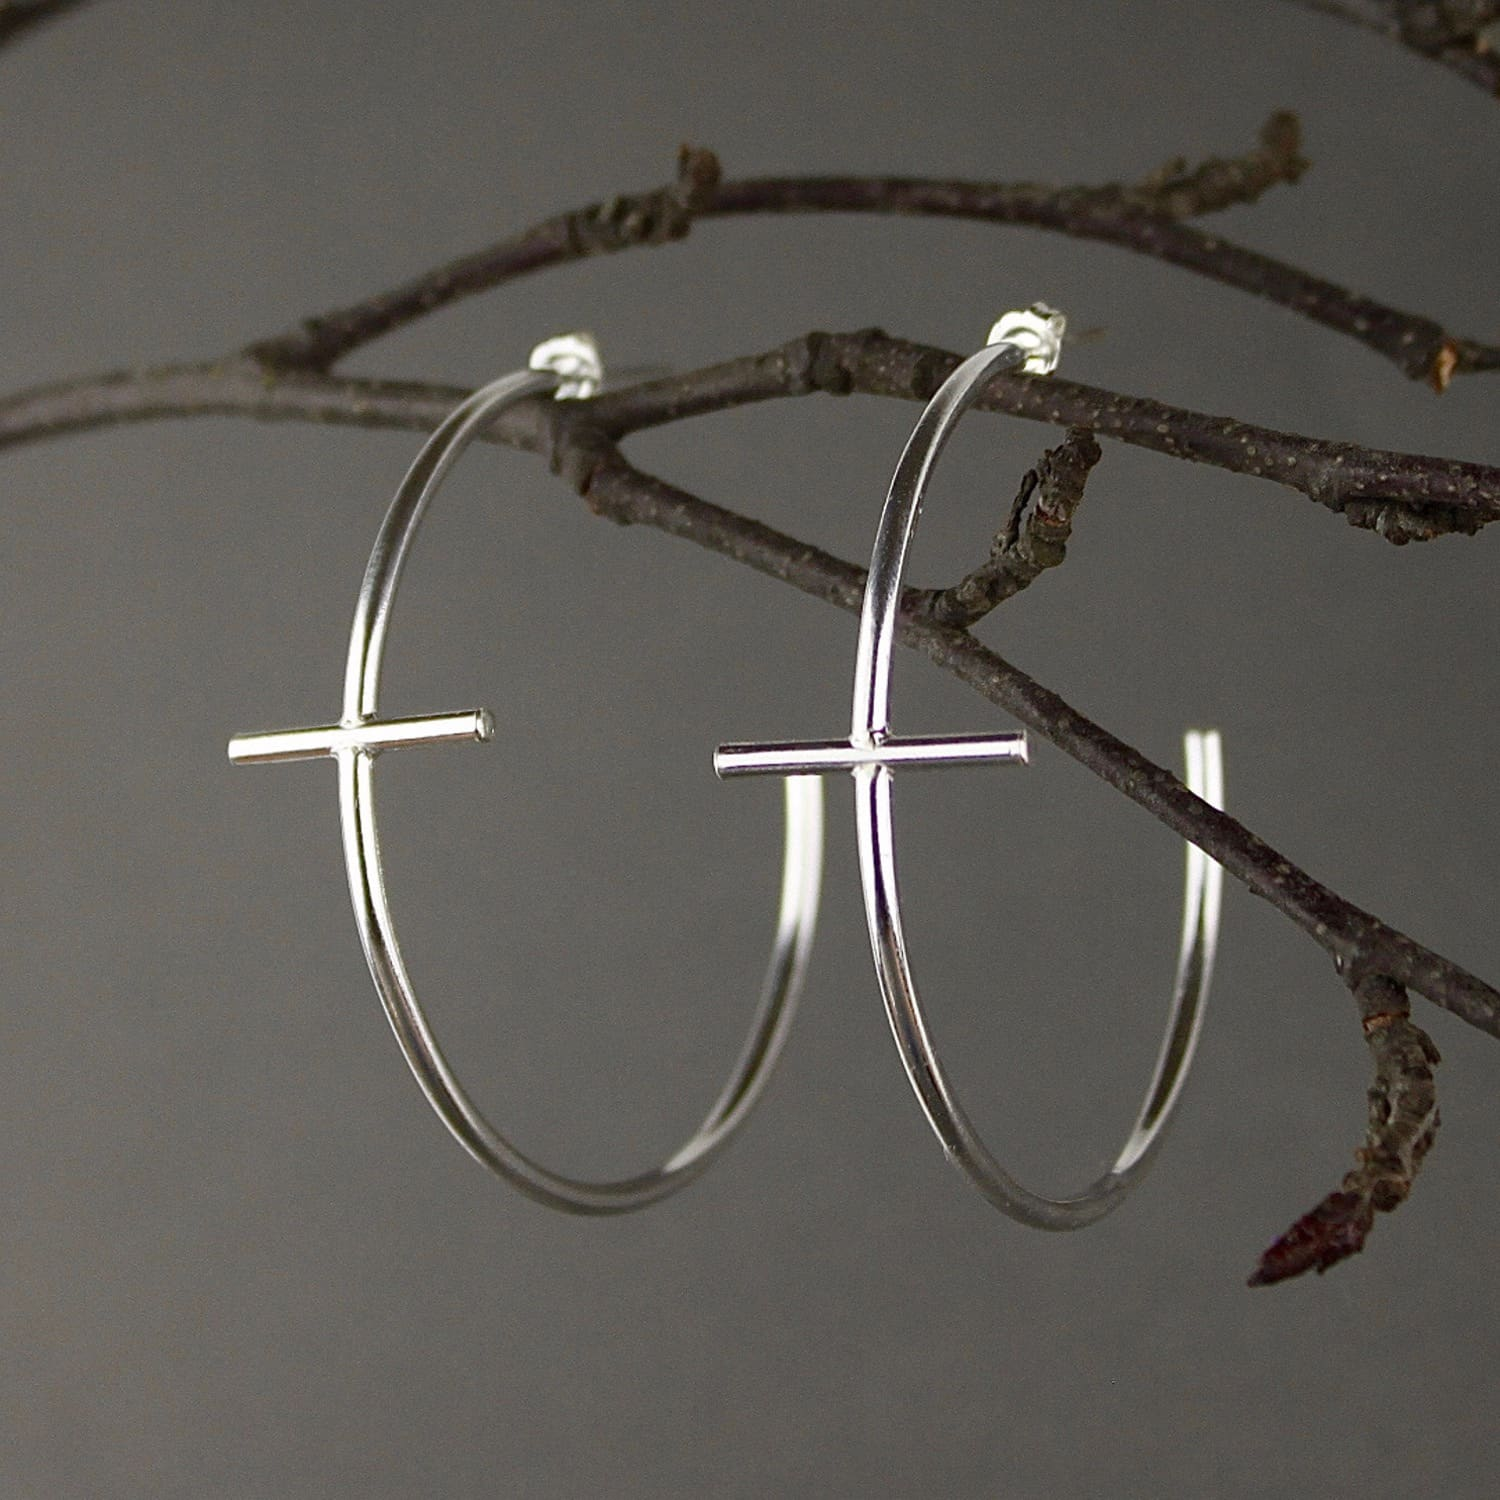 8e9d17d9a Large Silver Cross Hoop Earrings - Best All Earring Photos ...